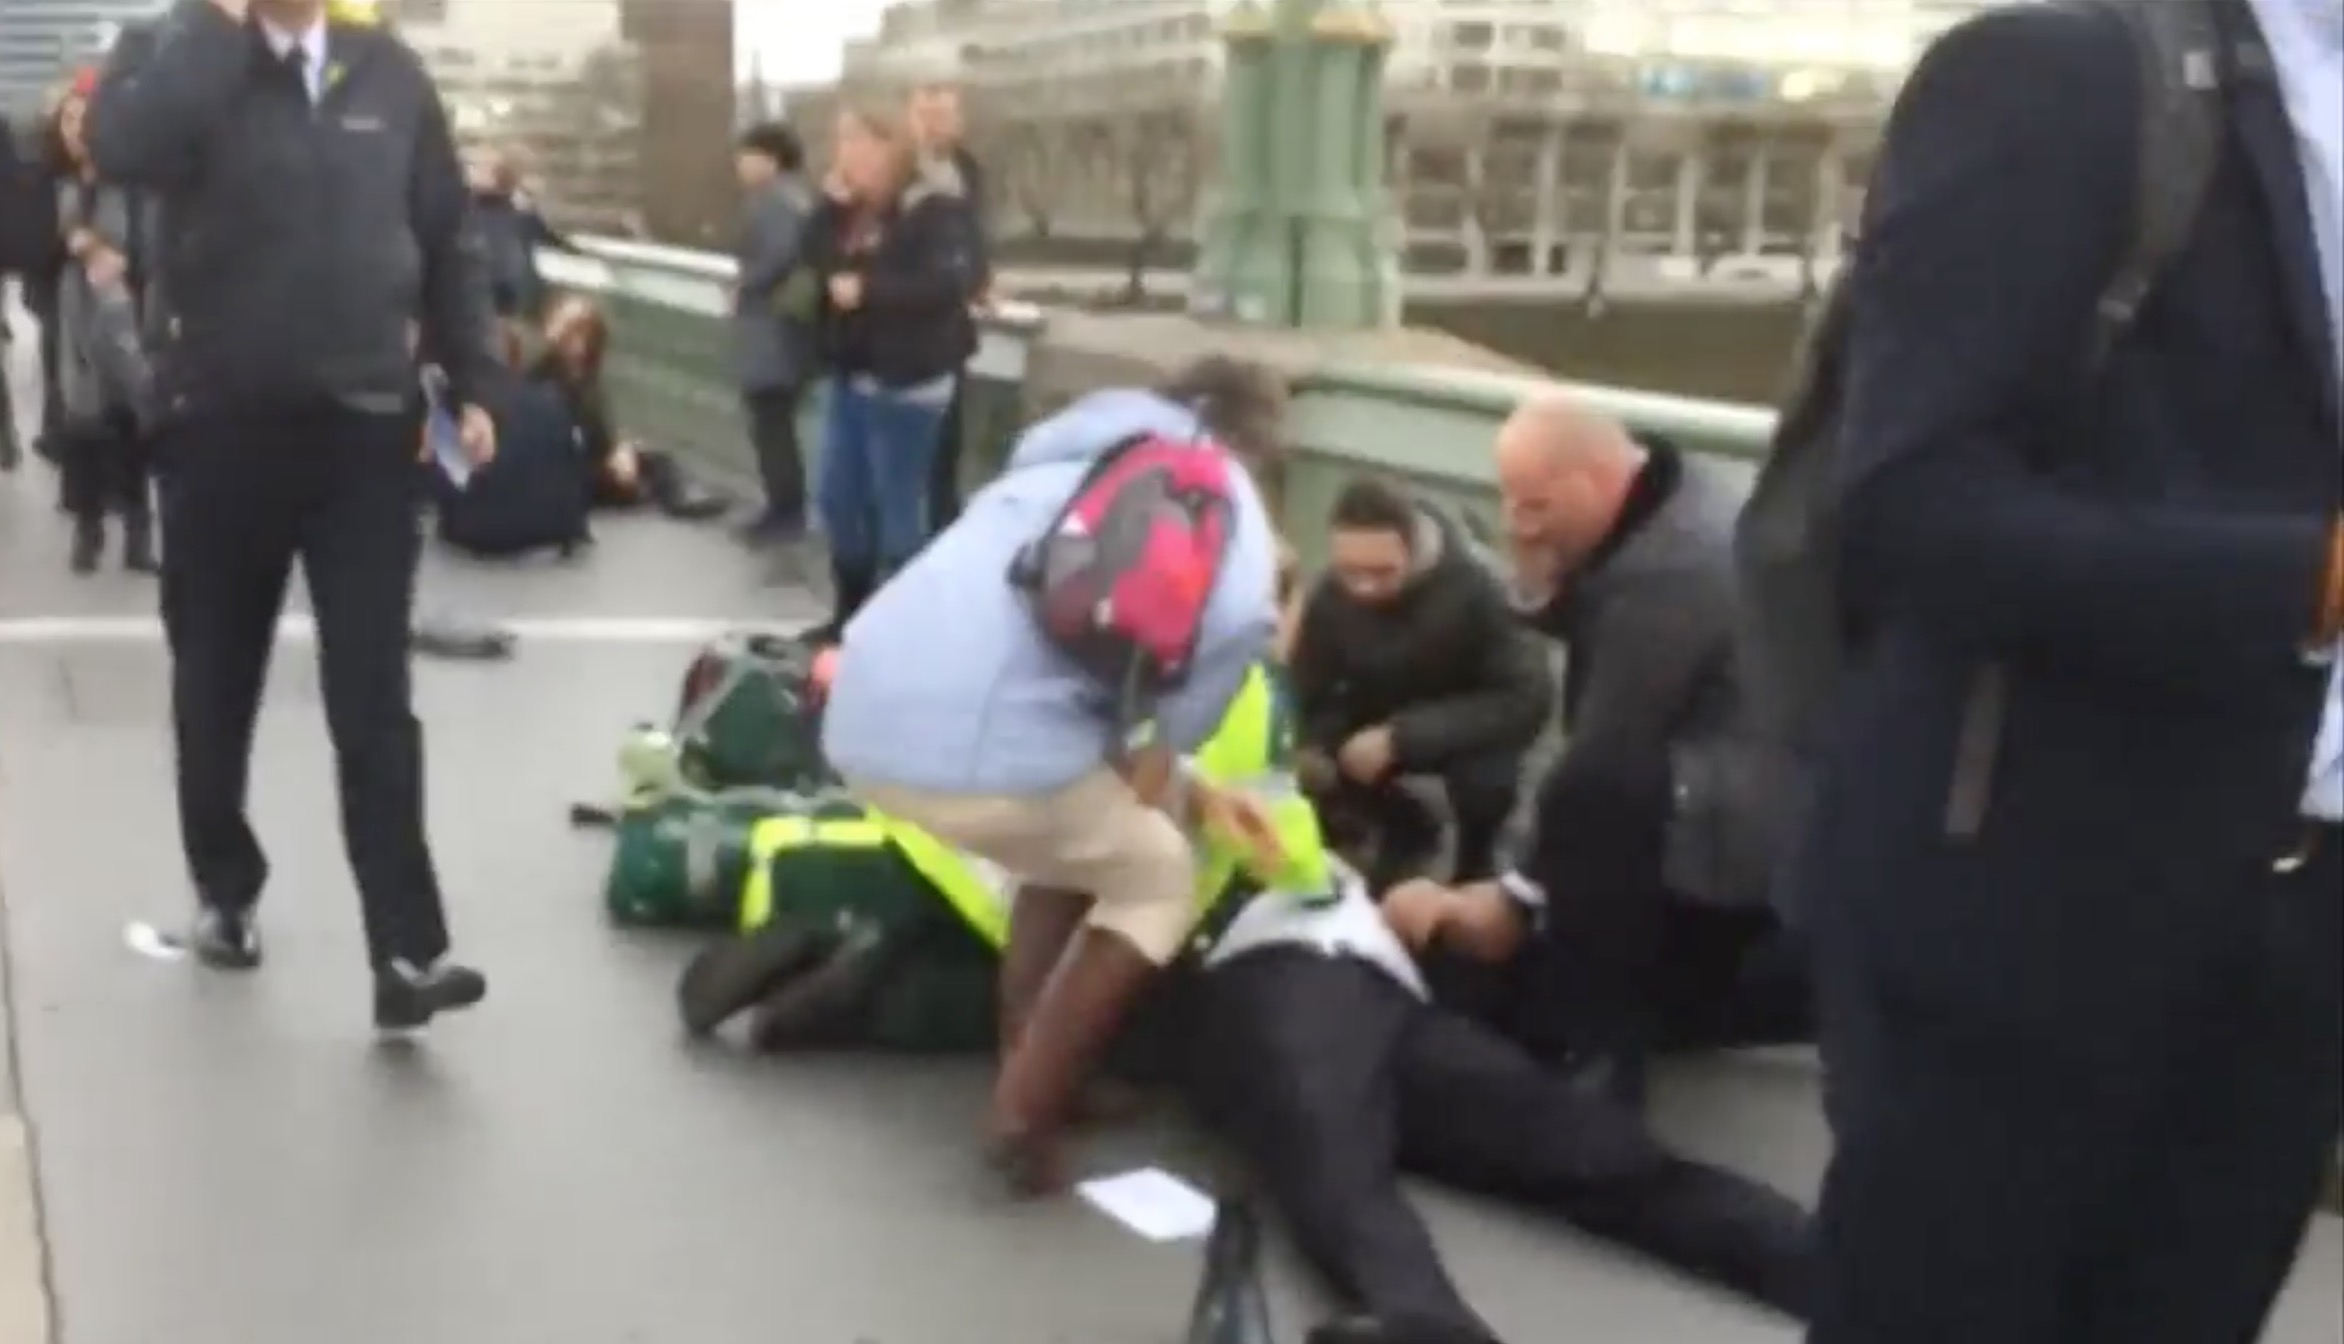 People trying to help the around 20 people who were hit by the terrorist's car on Westminster Bridge.